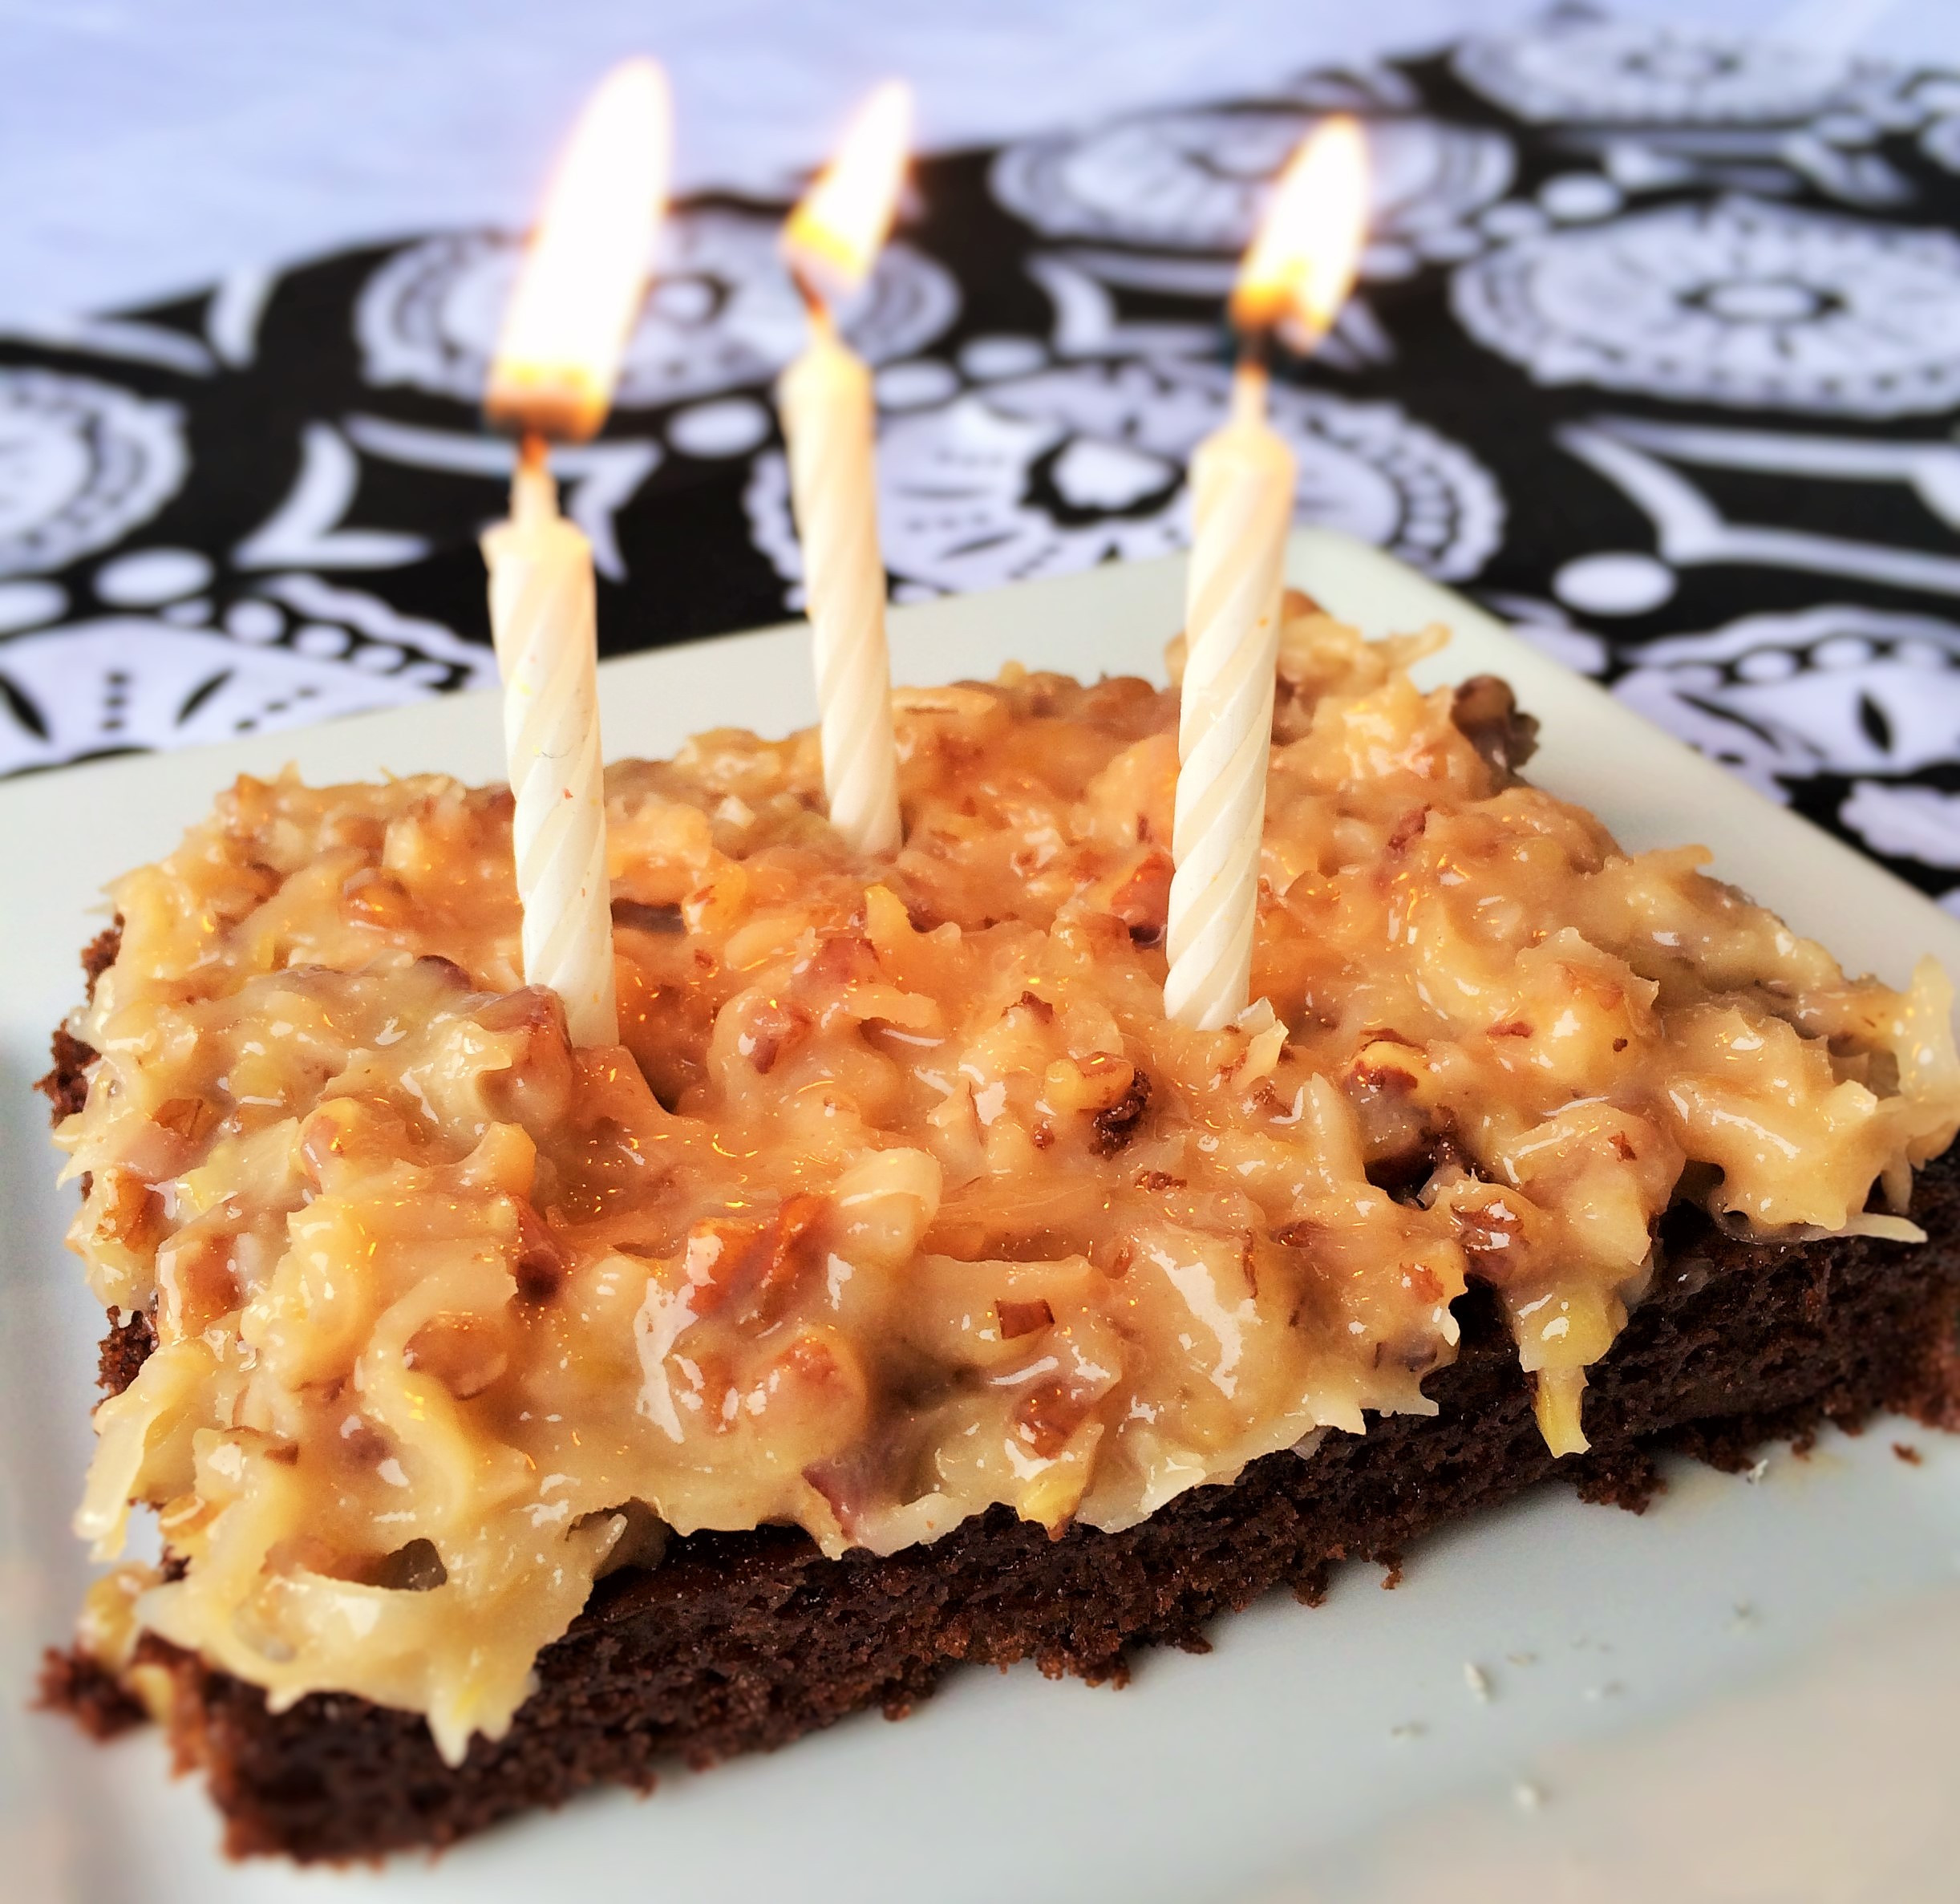 German Chocolate Sheet Cake  German Chocolate Sheet Cake